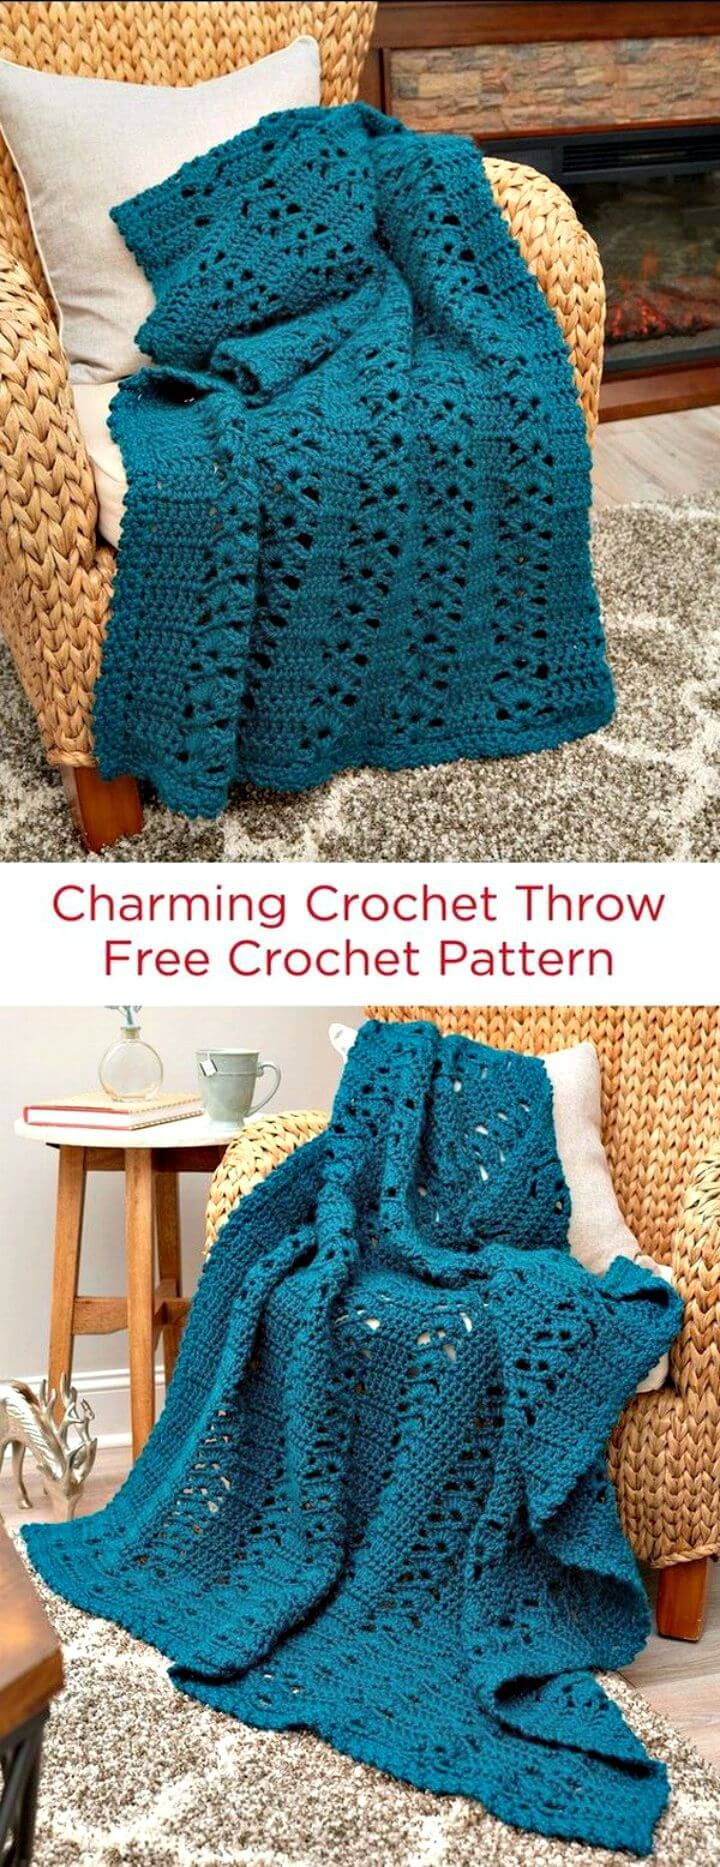 Best 25 crocheted afghans ideas on pinterest afghan crochet crochet afghan patterns 41 free patterns for beginners bankloansurffo Image collections